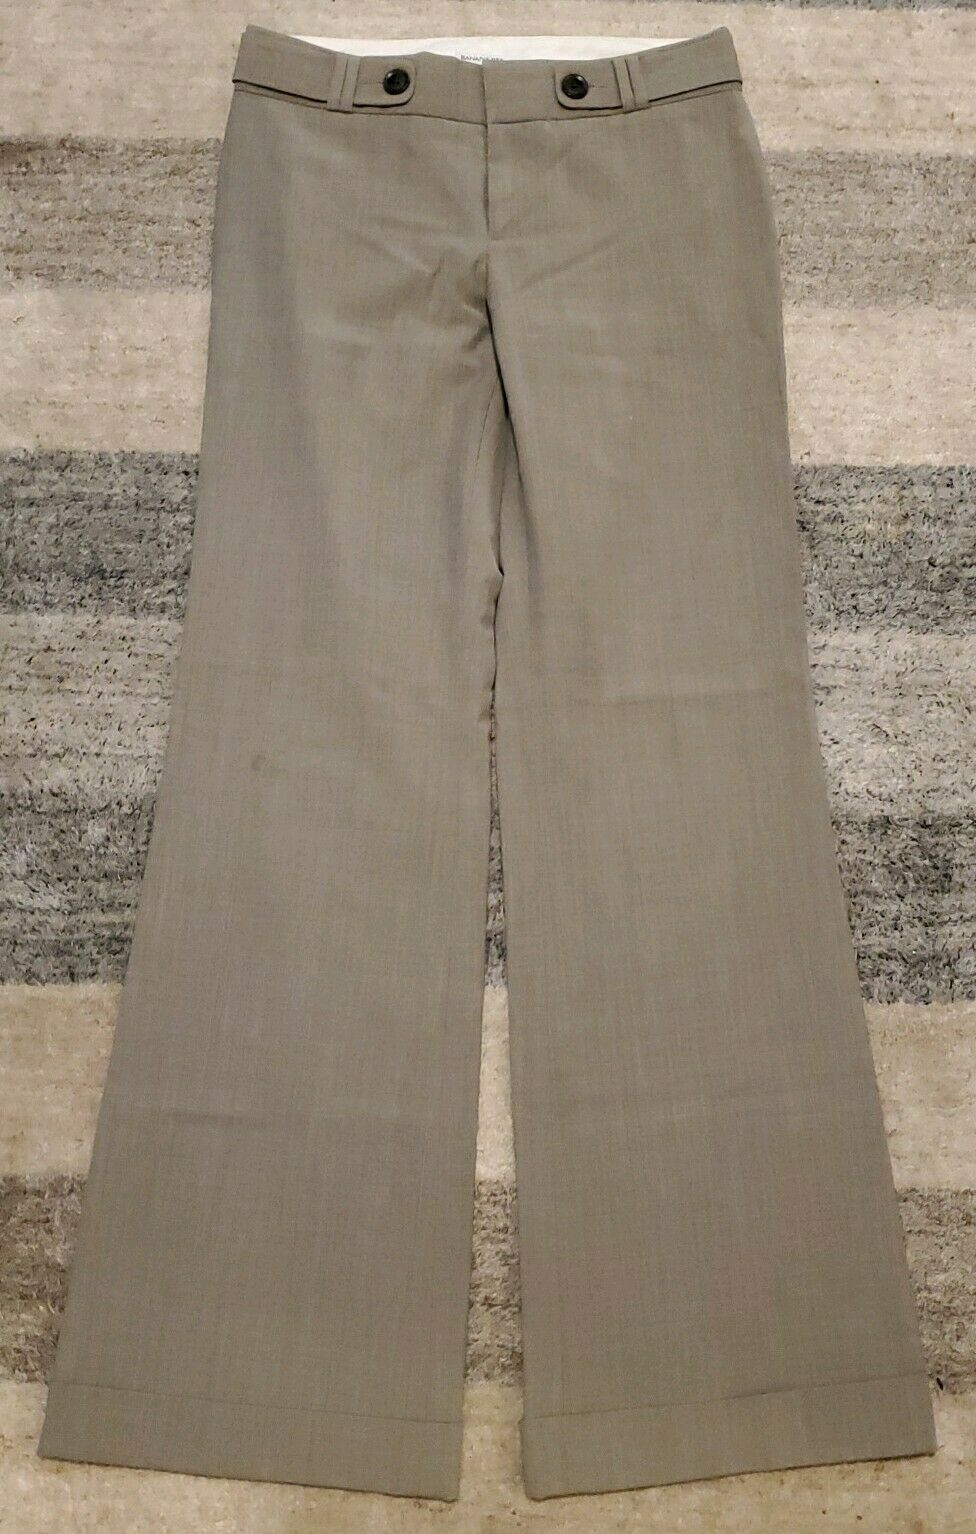 Banana Republic Beige Flare Wide-Leg Dress Pants for Women, Martin Fit, Size 2 - $14.90